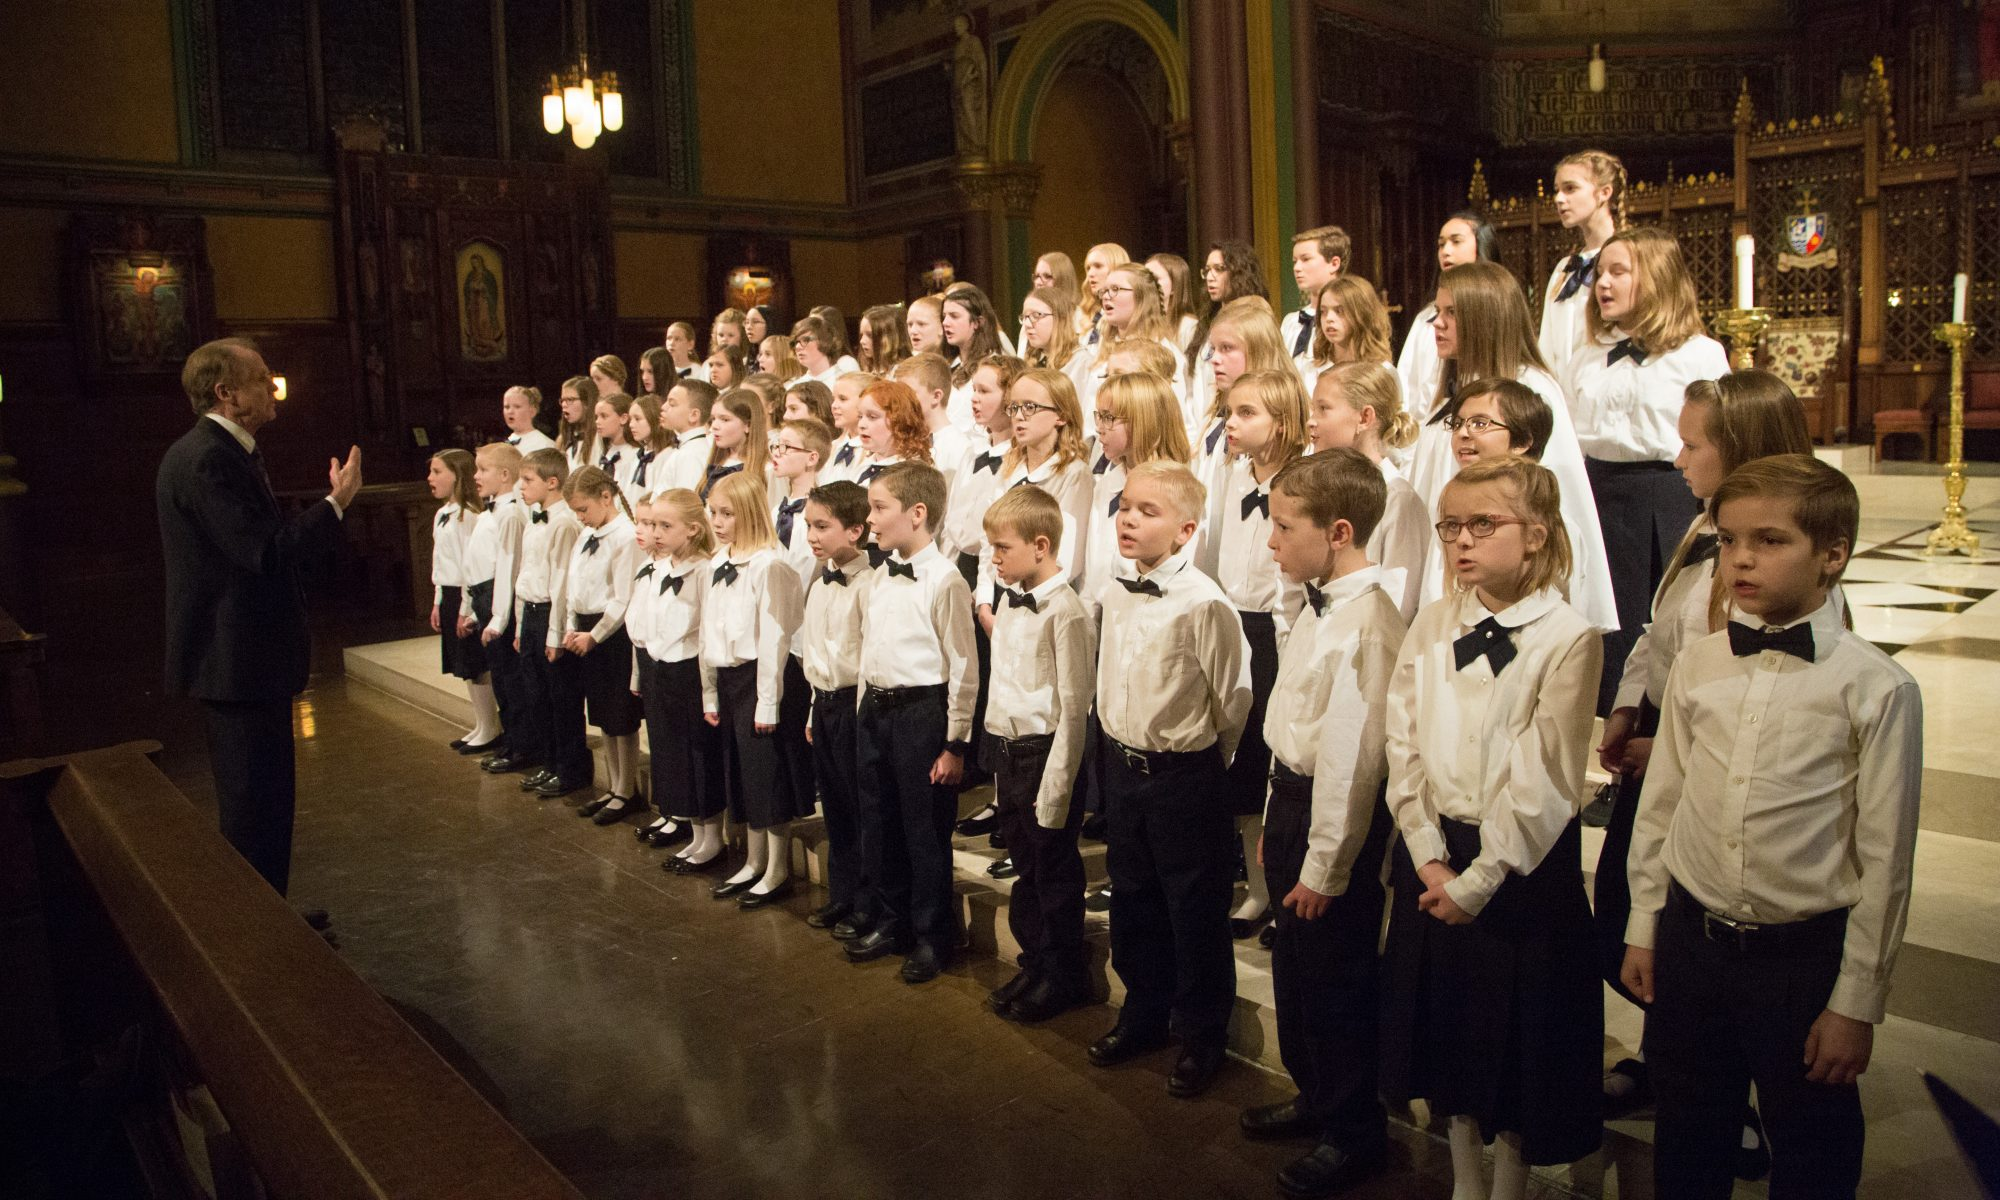 The Salt Lake Childrens Choir